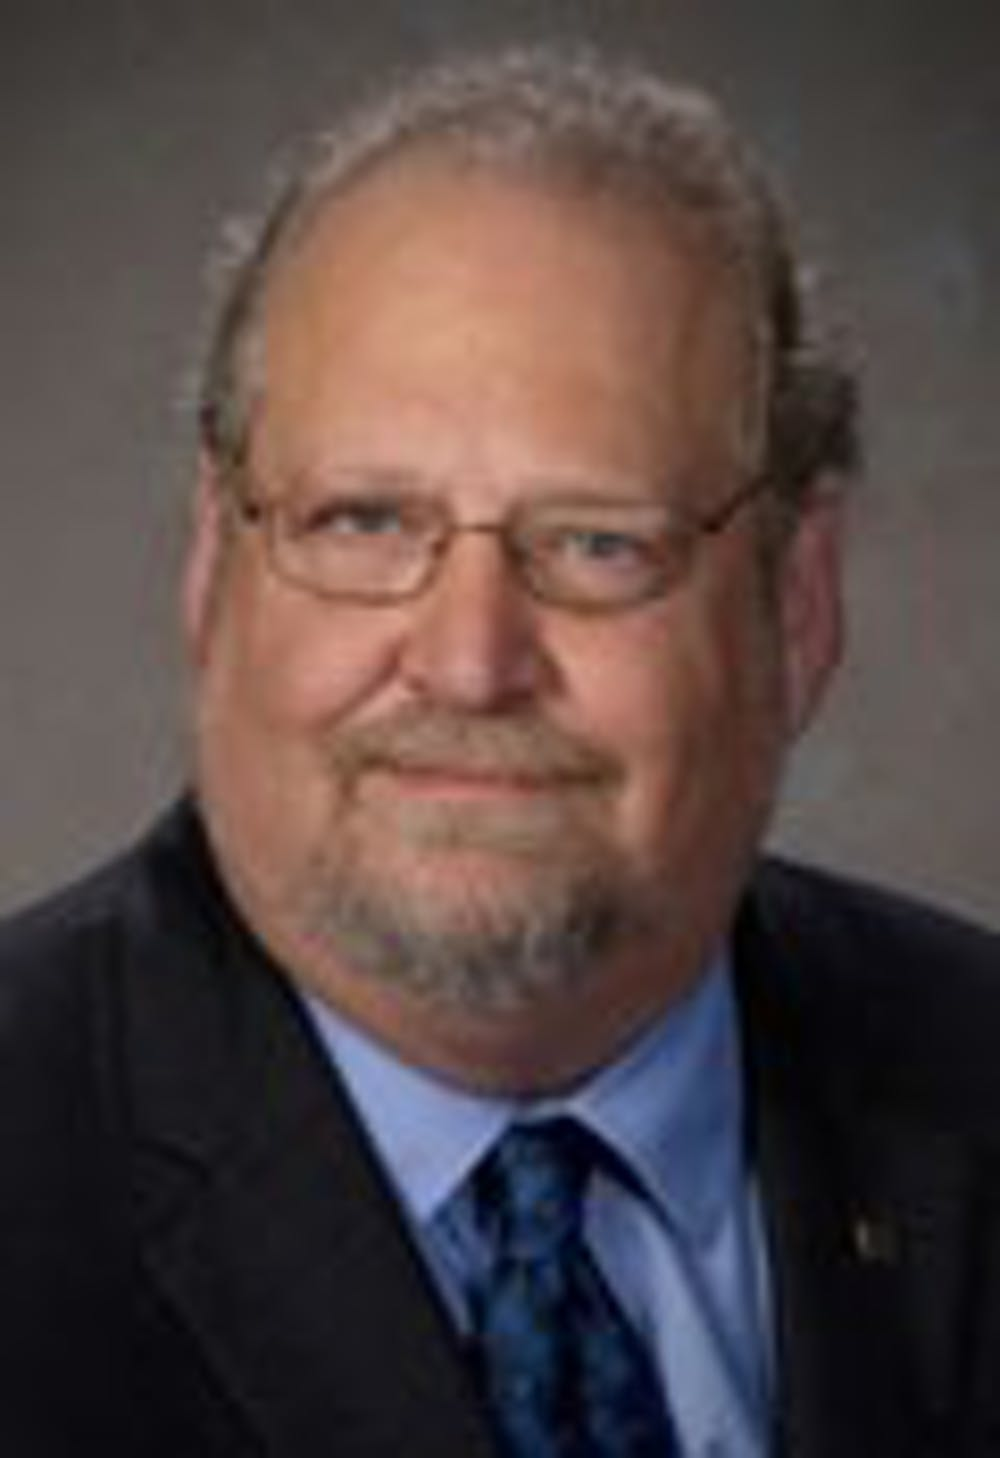 Former EMU provost, current professor dies at 63